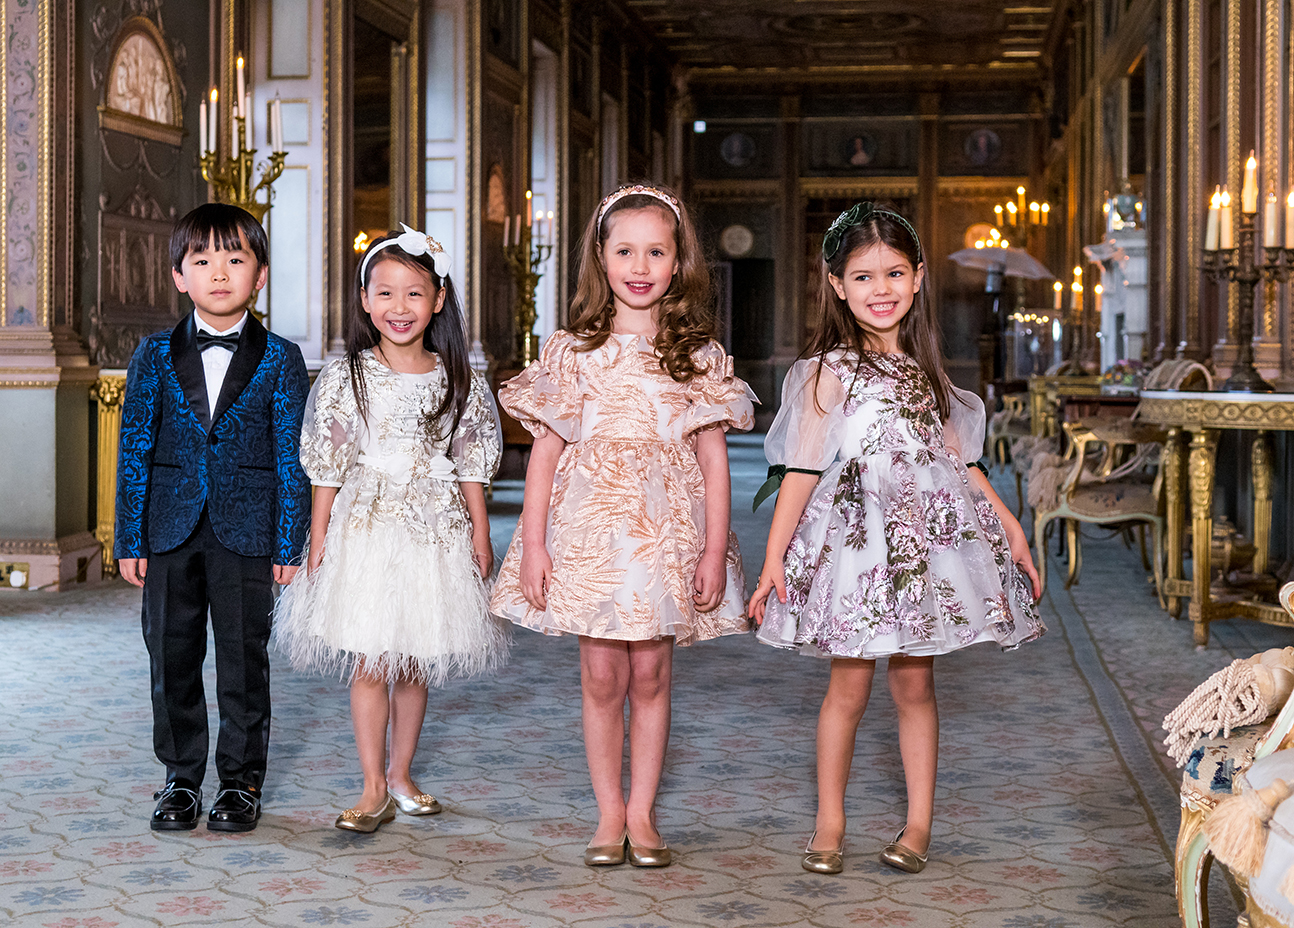 one boy and three girls wearing luxury designer childrens wear in a fancy building.